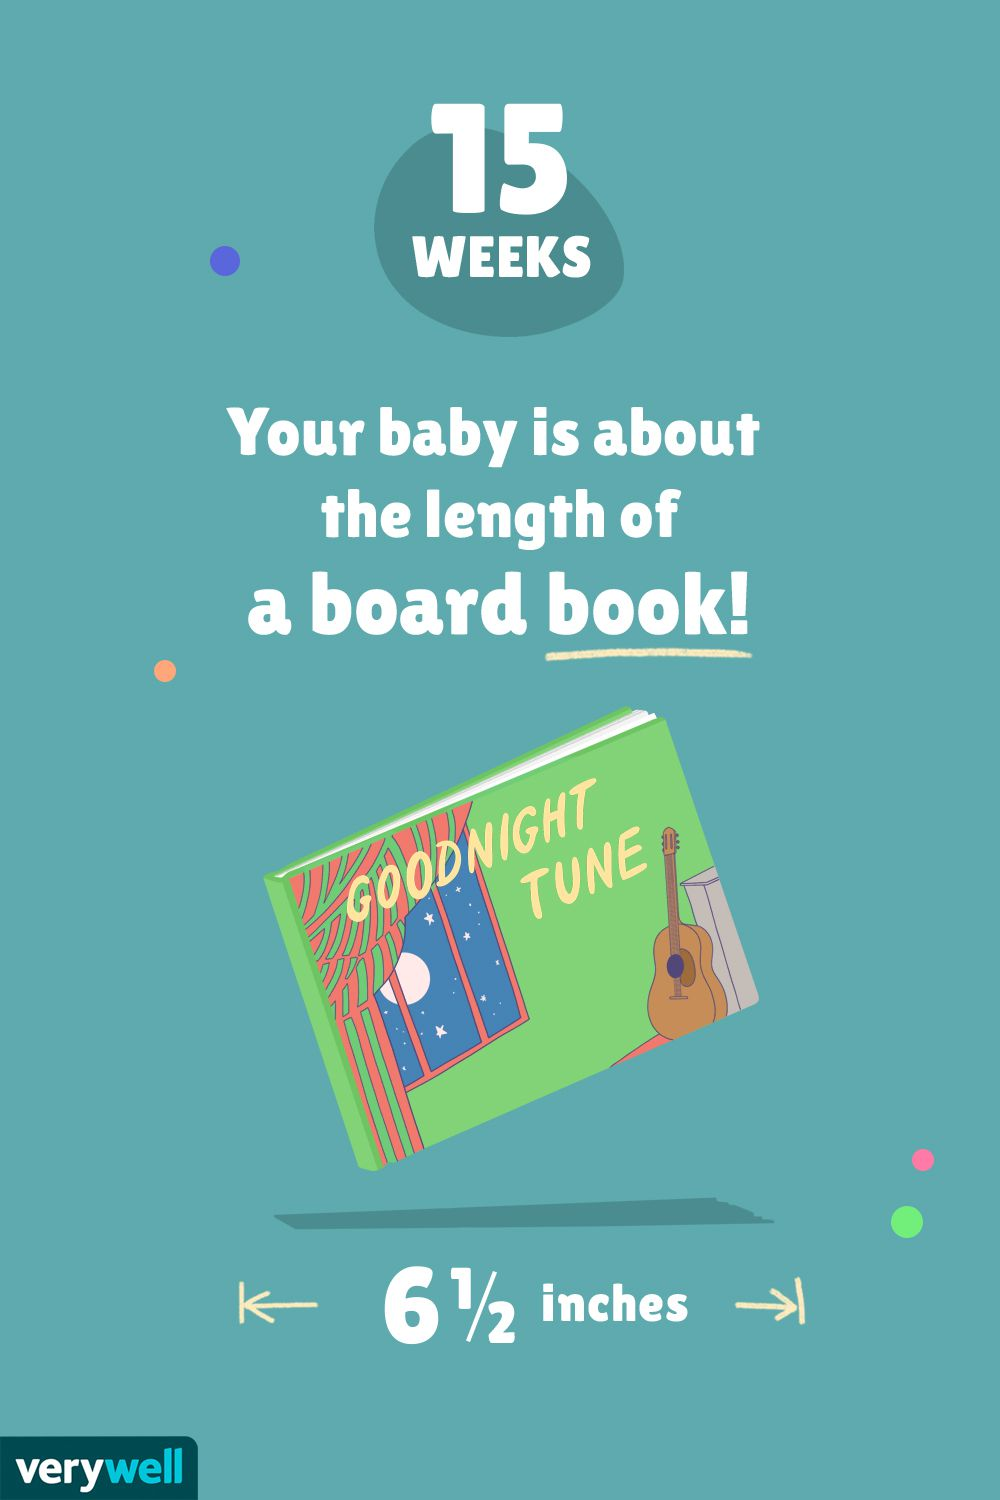 At 15 weeks pregnant, your baby is about the length of a board book